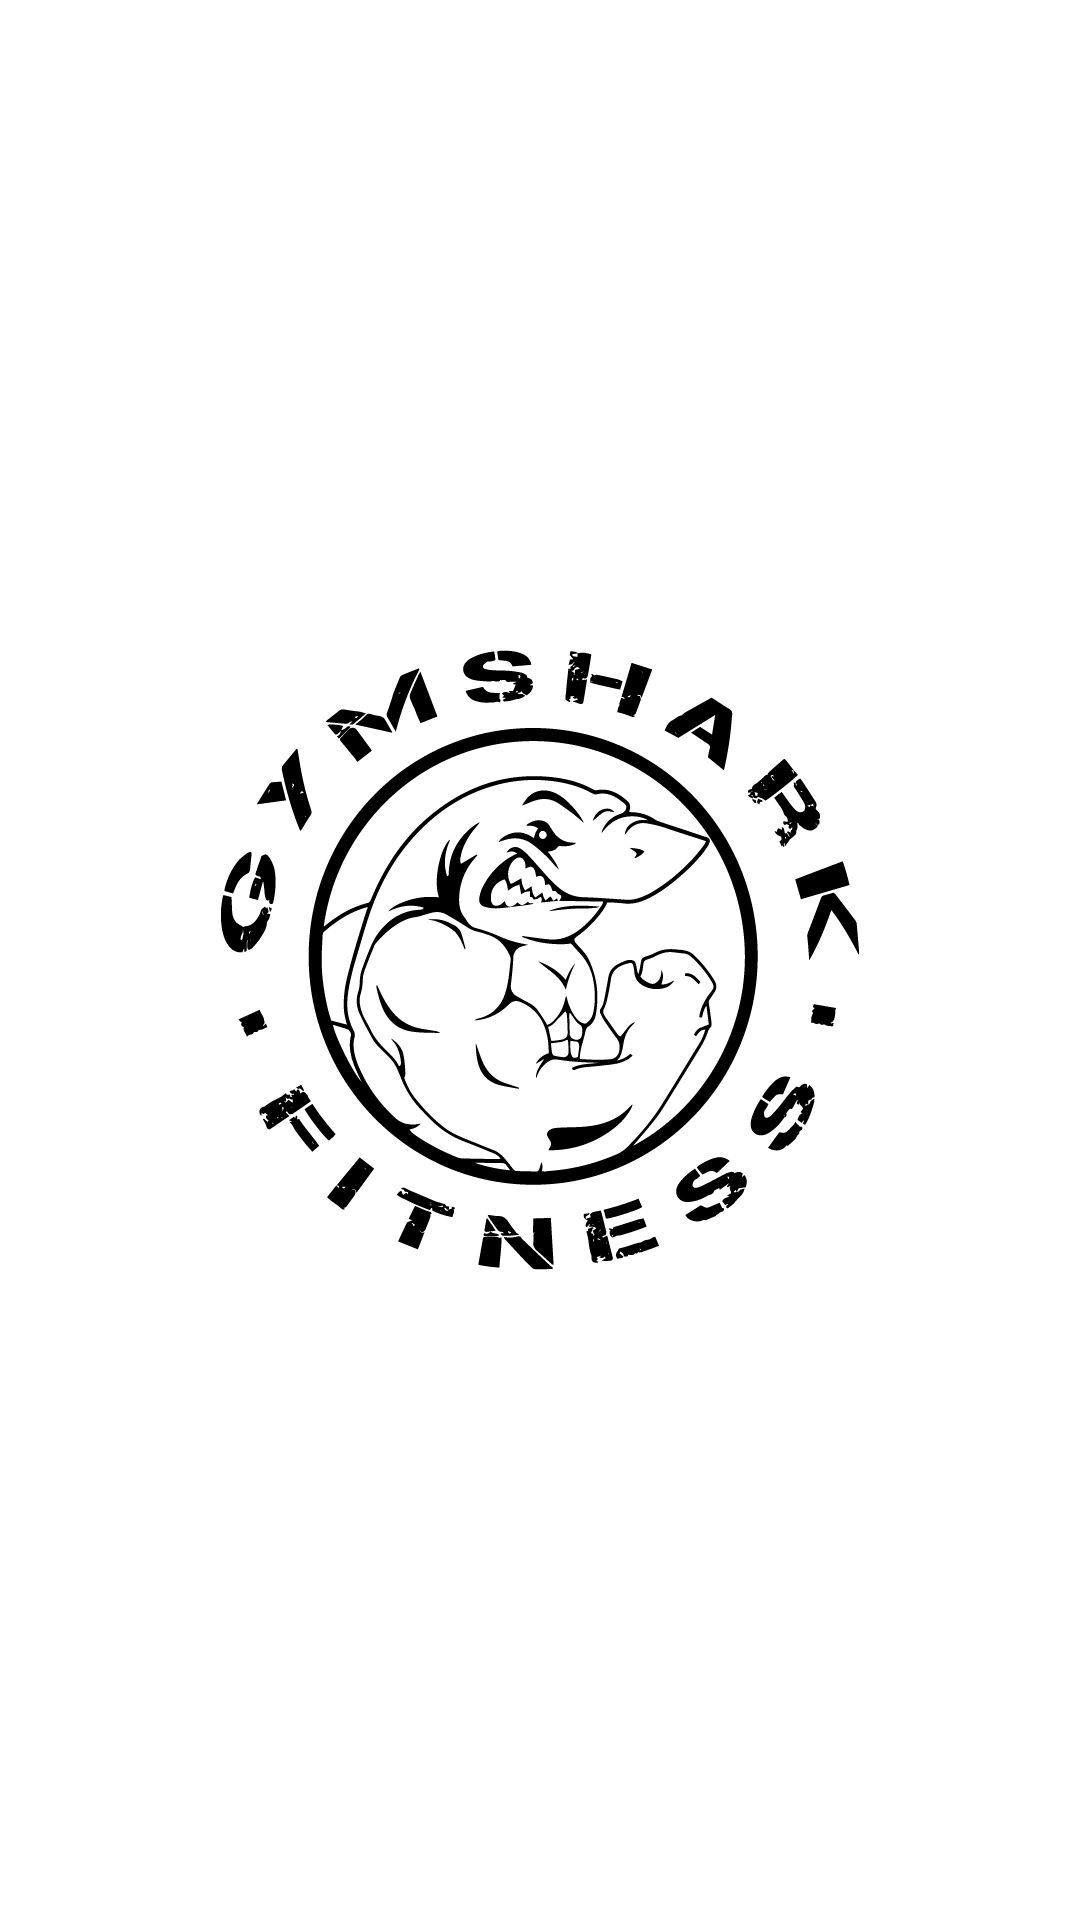 The Official Gymshark Wallpaper Aw18 Legacy White Gymshark